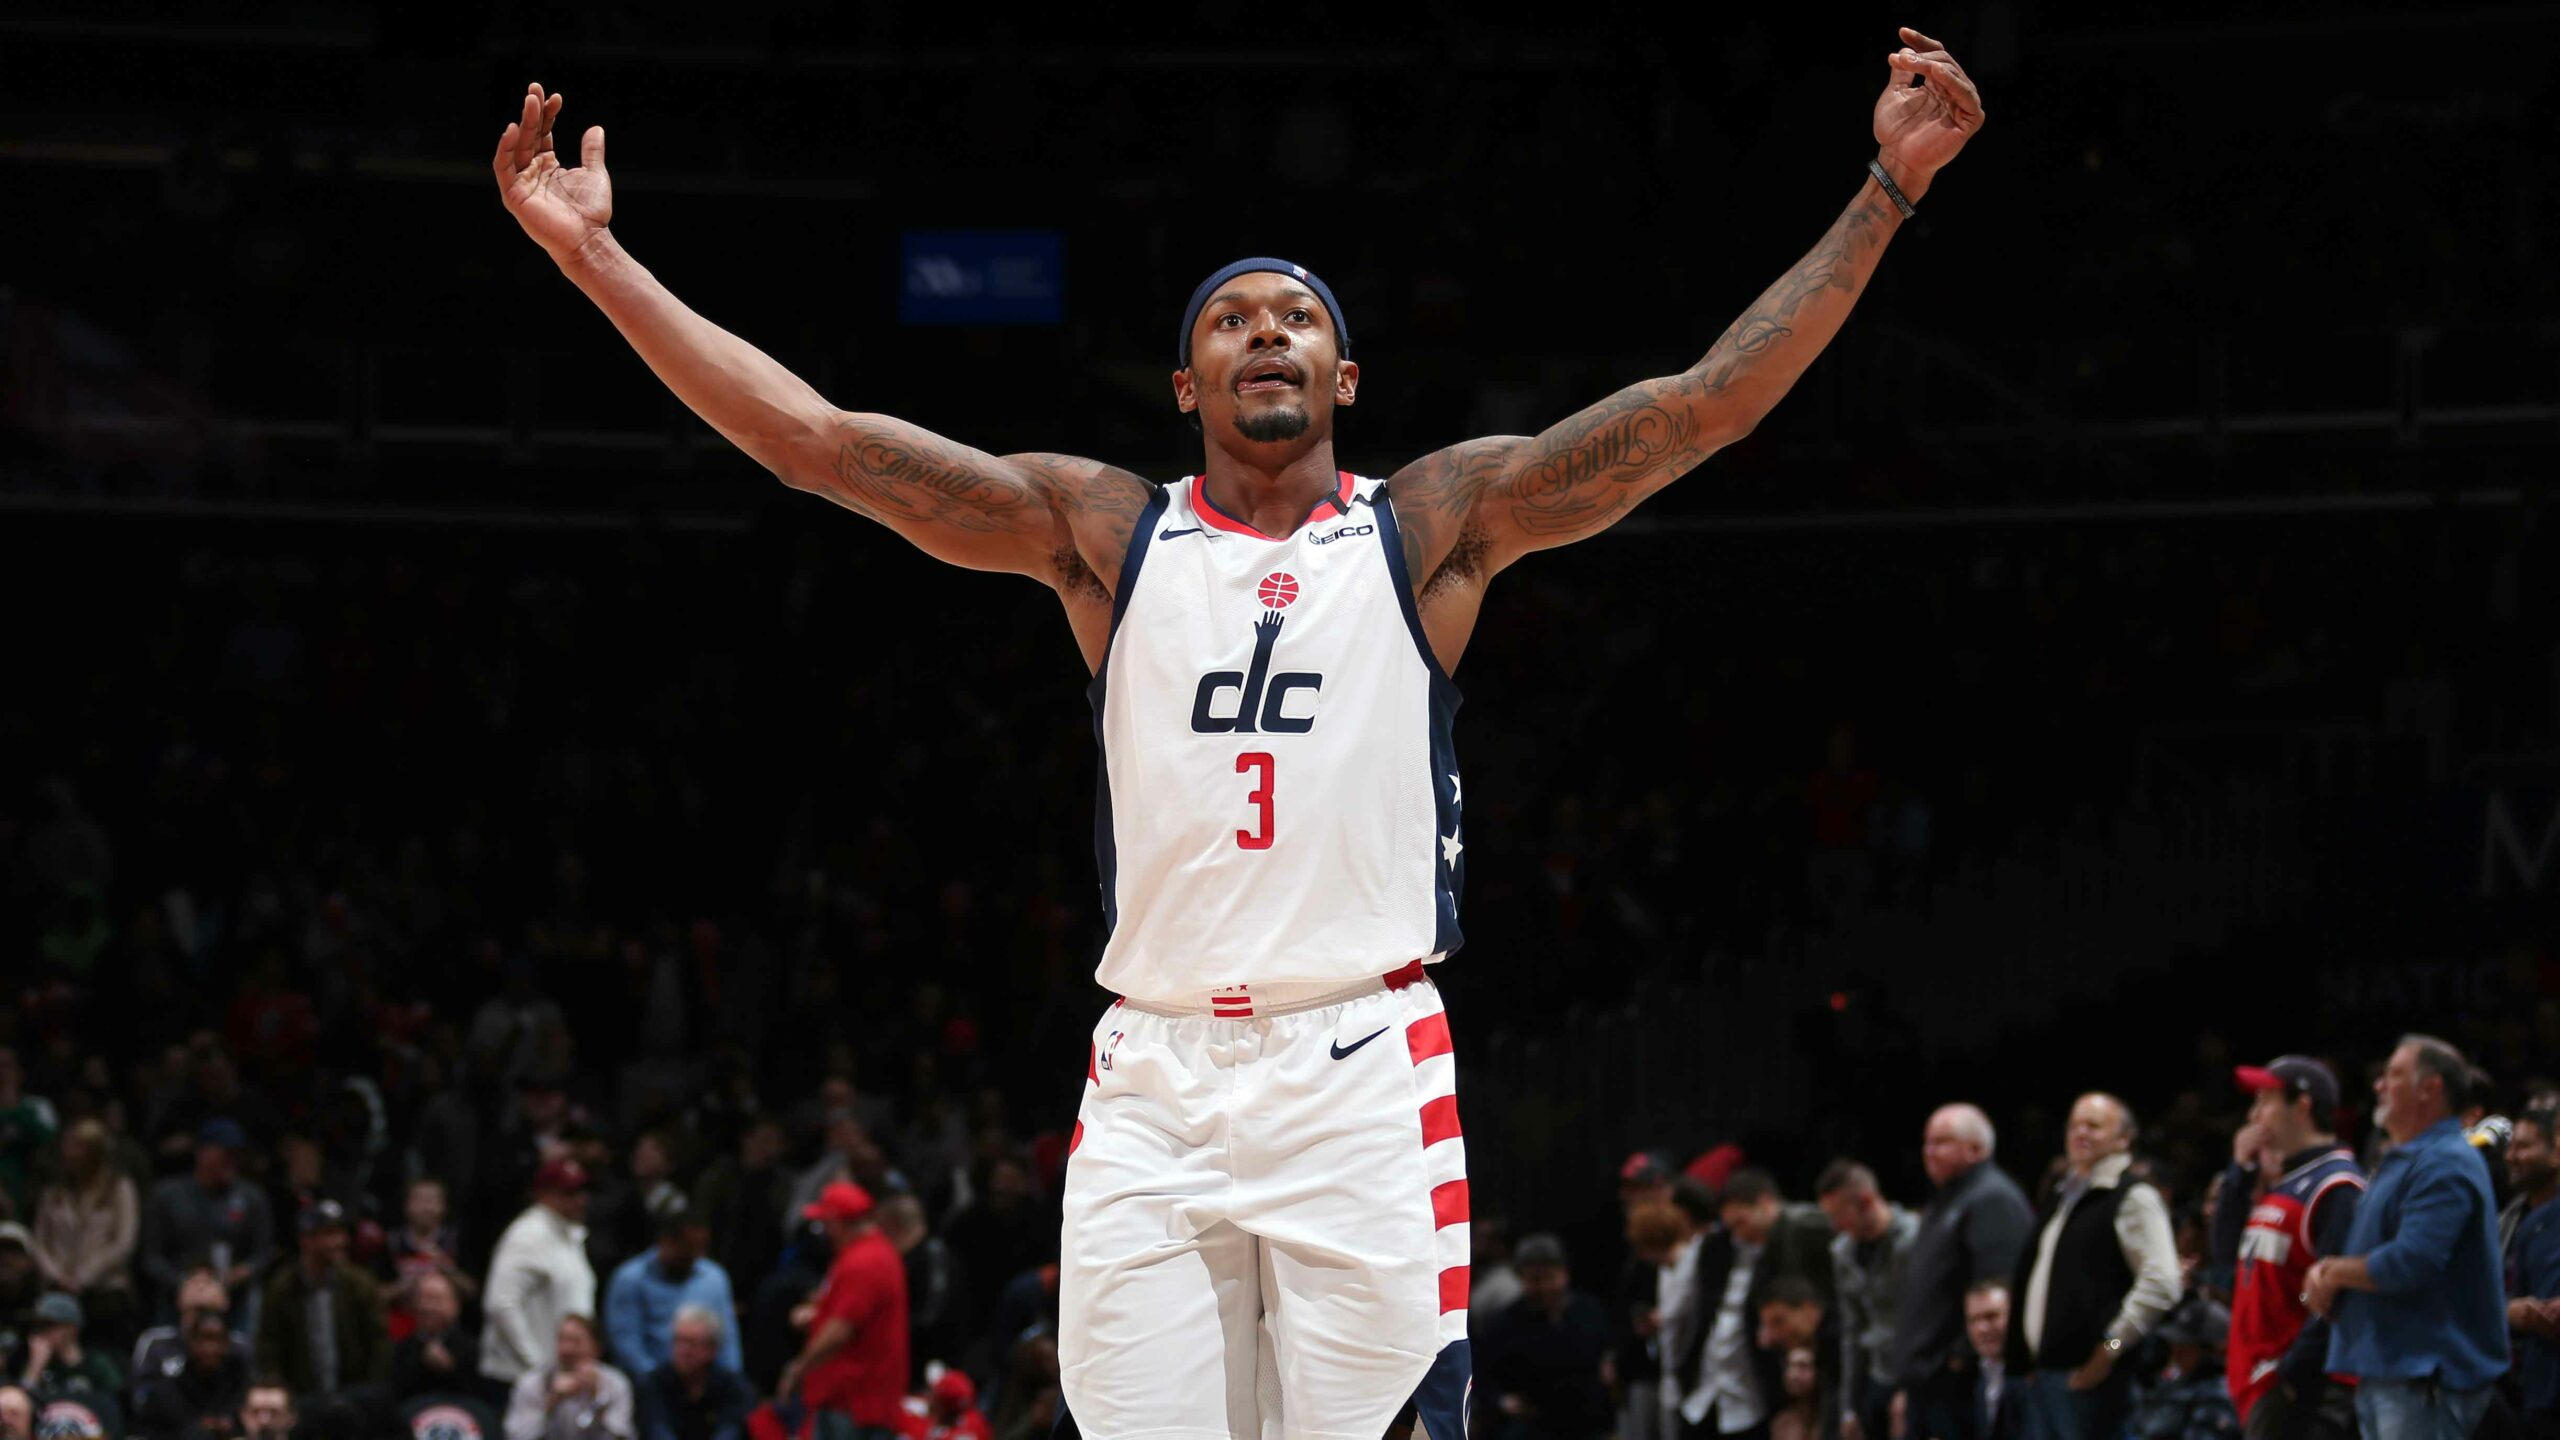 Bradley Beal 1st to score 50 in back-to-back nights since Kobe Bryant in 2007